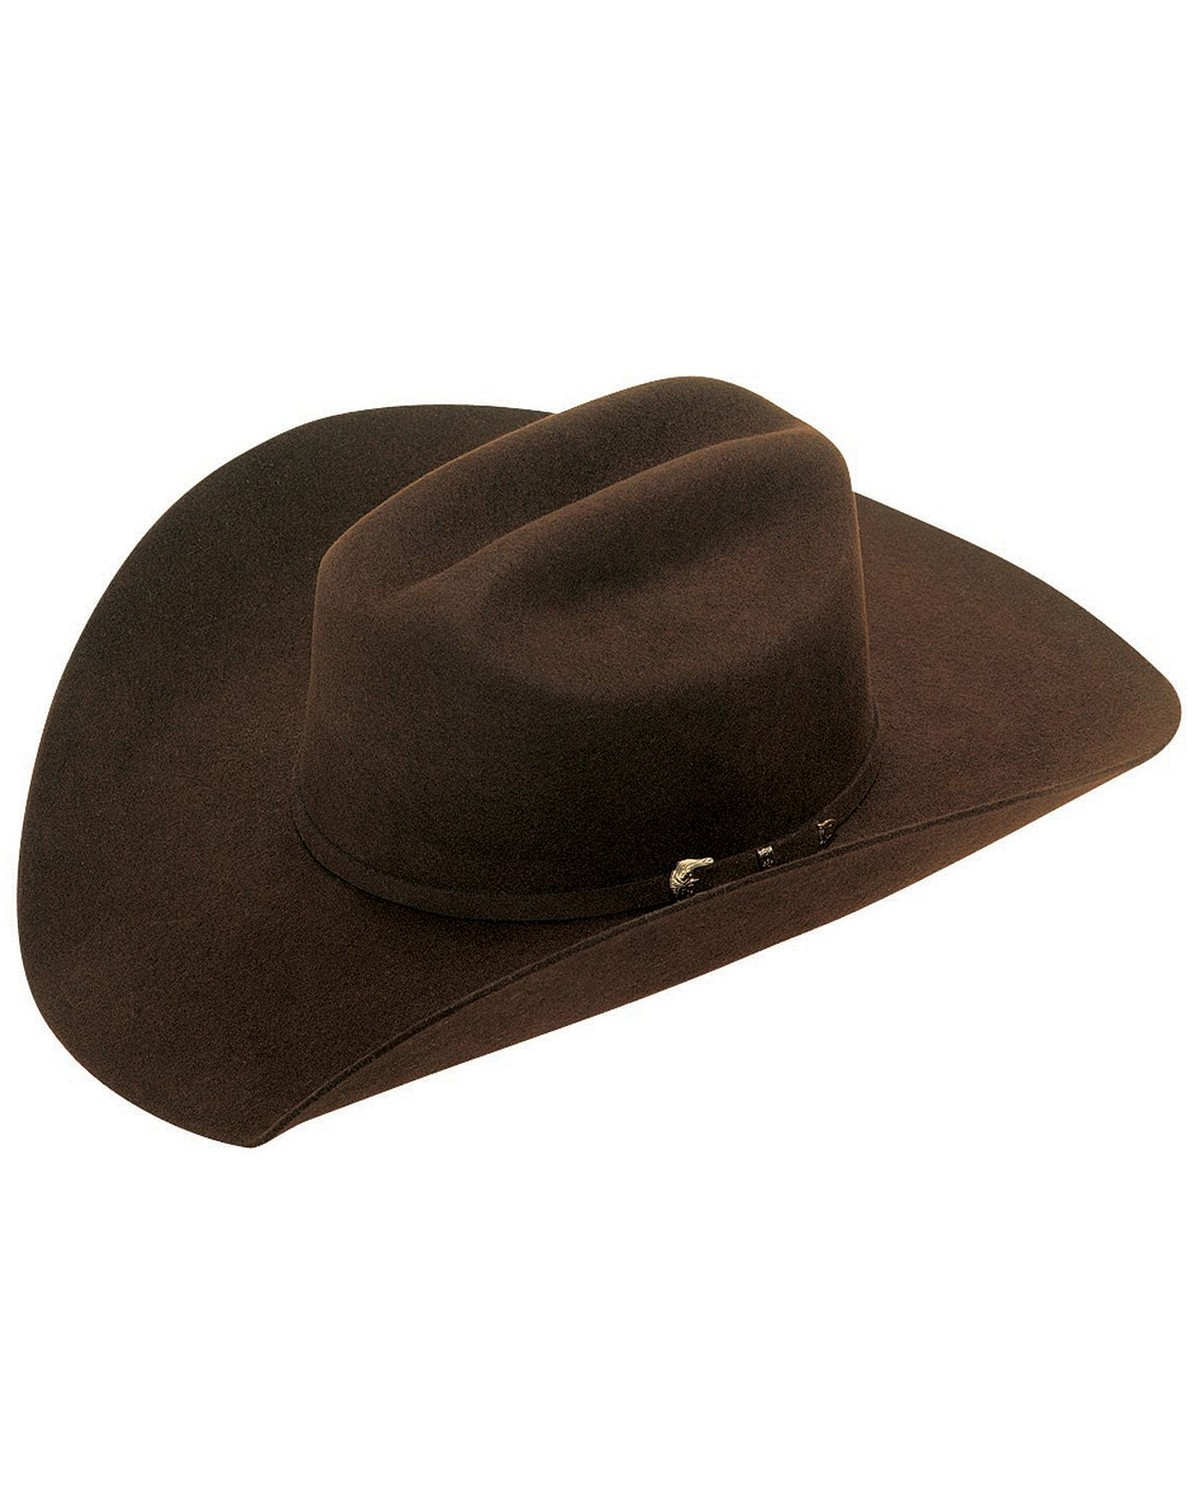 Twister Santa Fe 2x Select Wool Cowboy Hat Country Outfitter